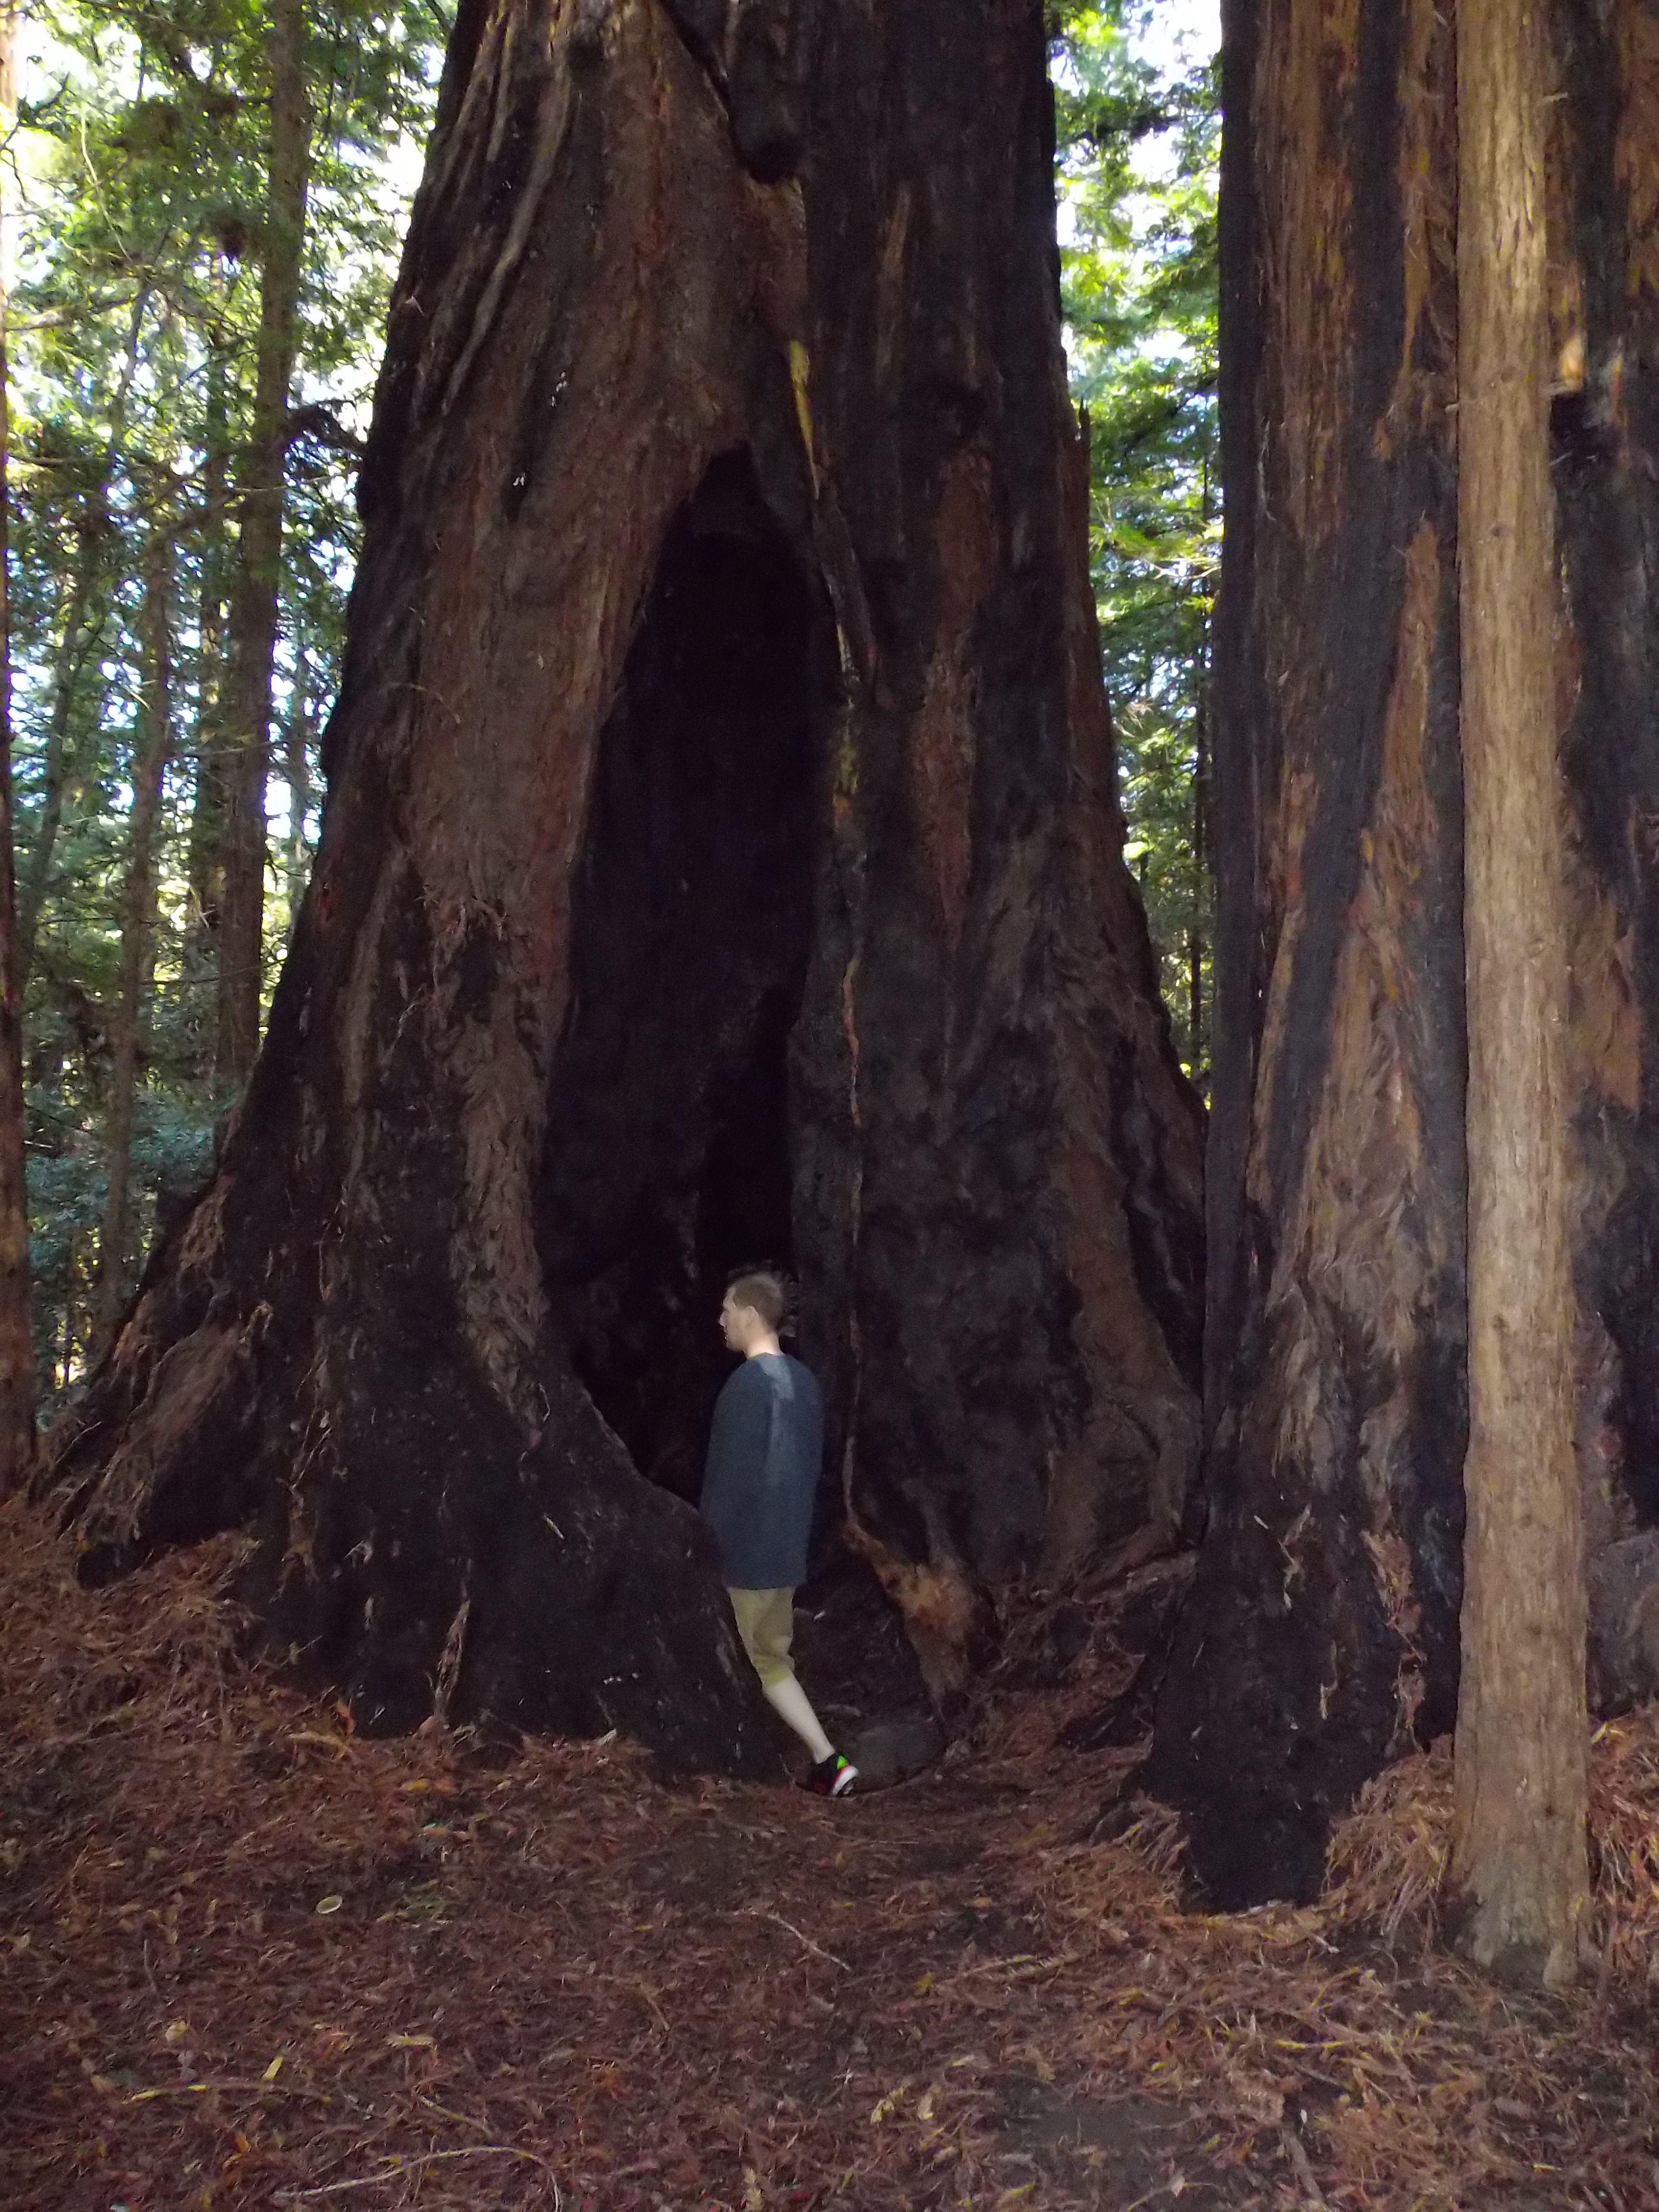 Walking in to a Redwood. Avenue of the Giants. Northern California. 3*11*14